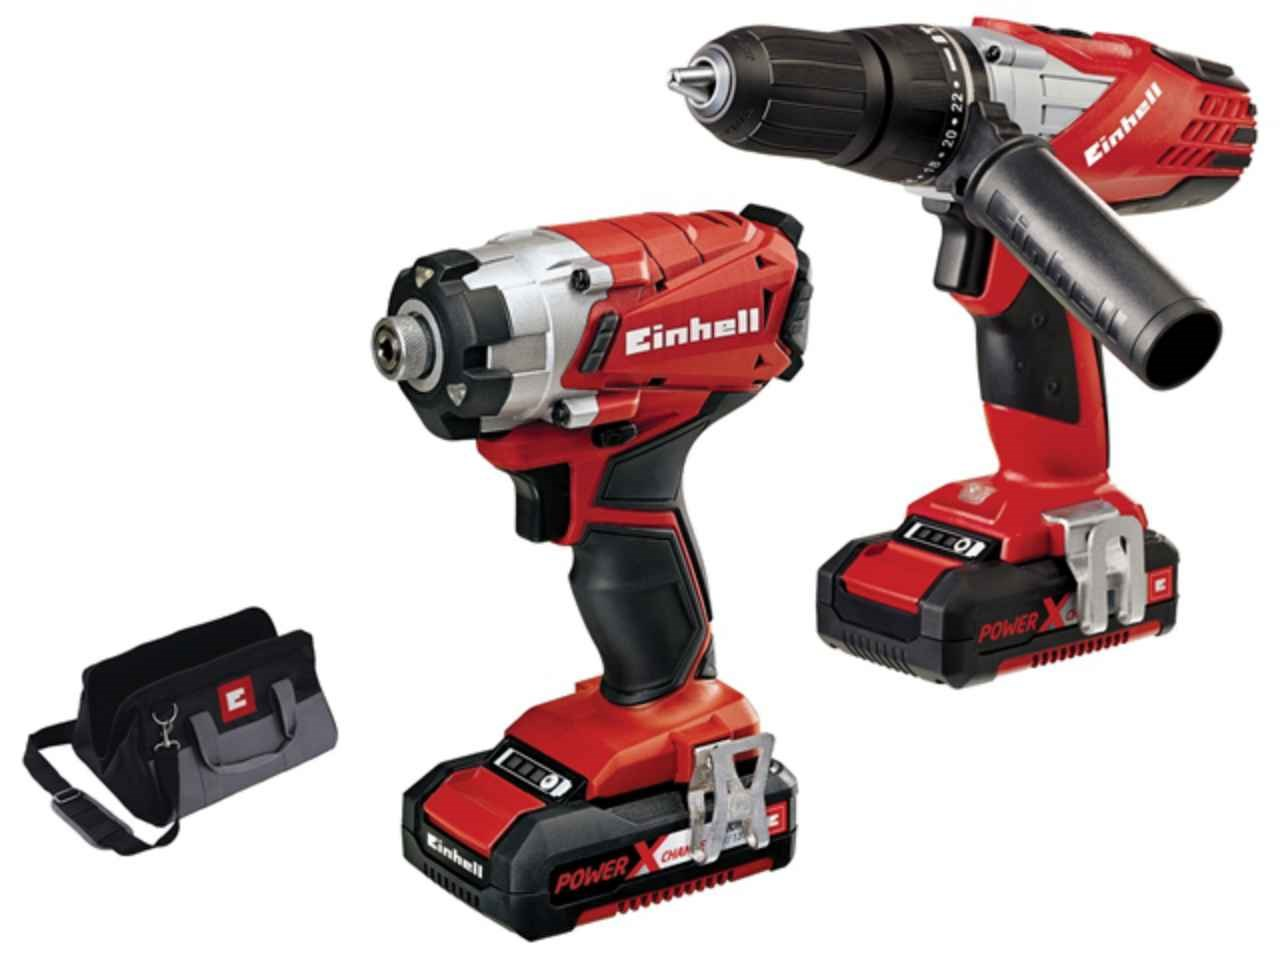 einhell eintecd18ti power x change combi impact driver twin pack 18v. Black Bedroom Furniture Sets. Home Design Ideas